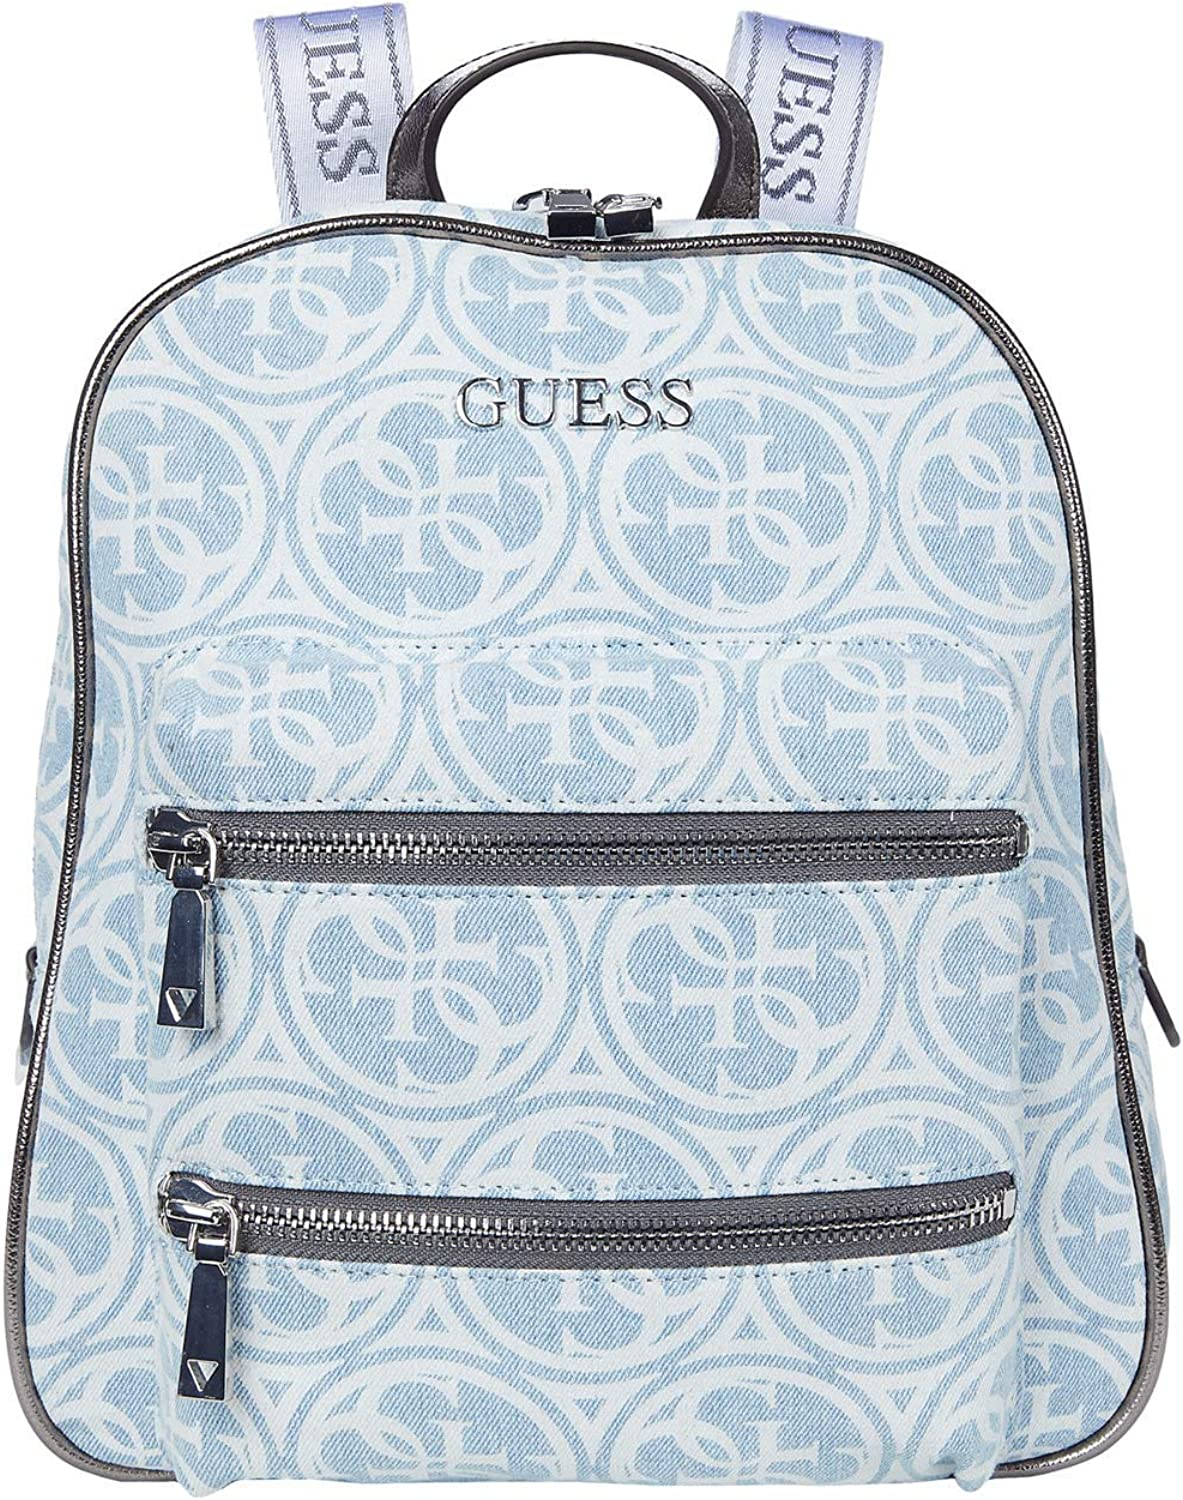 GUESS Caley Large Backpack